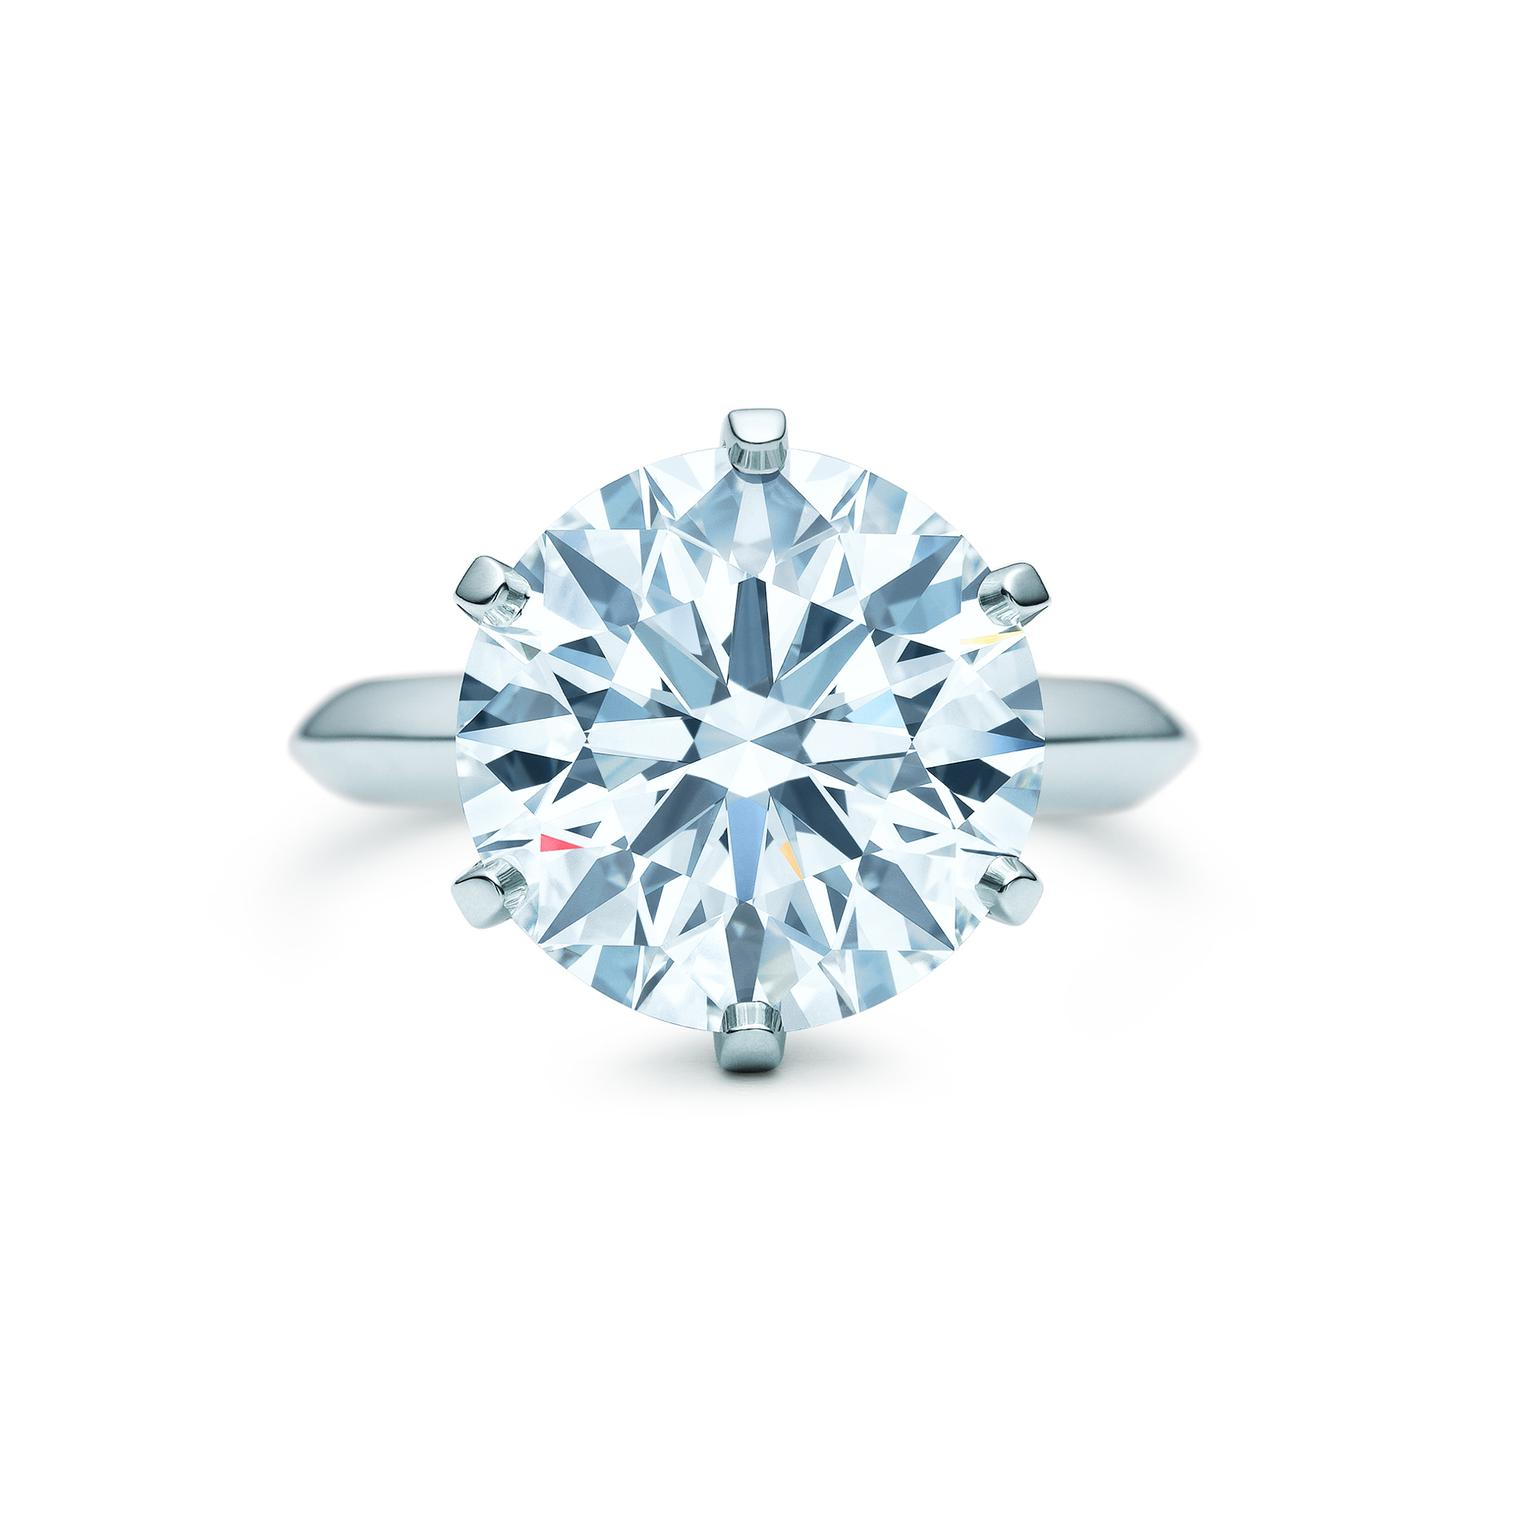 Tiffany setting Solitaire